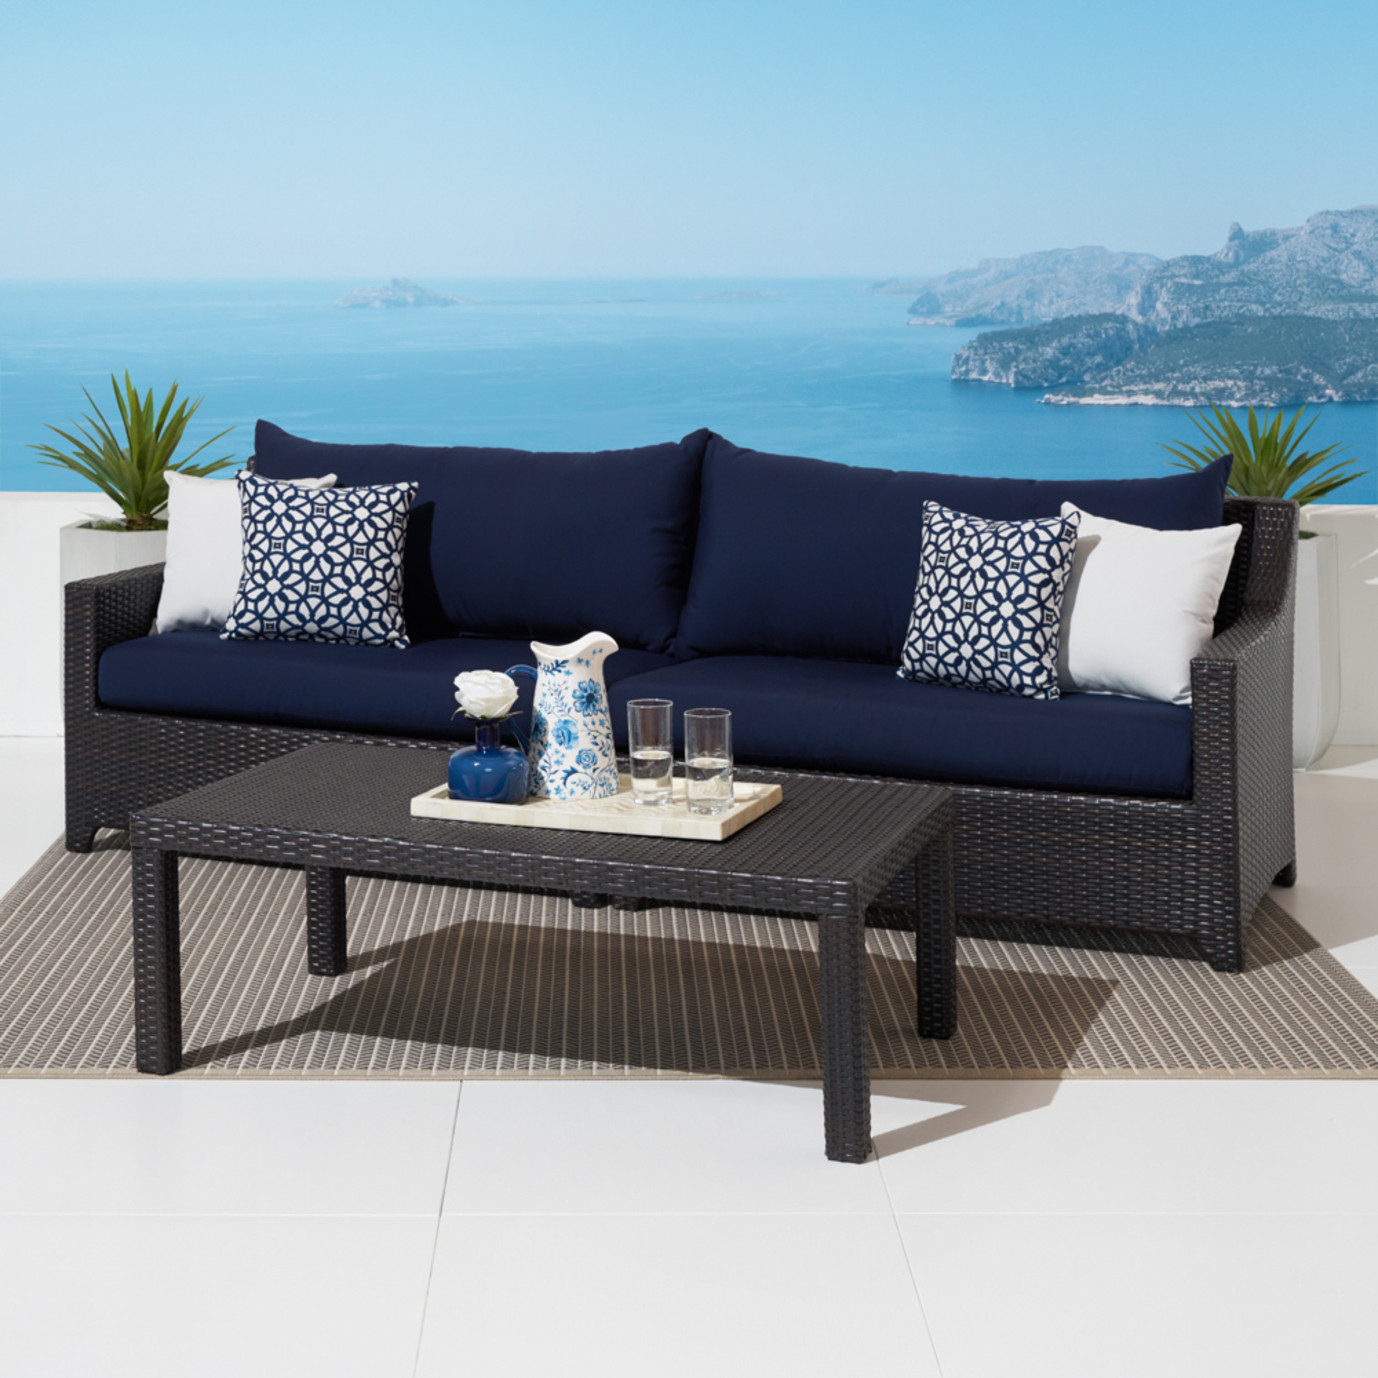 Deco Sofa With Coffee Table Navy Blue Rst Brands